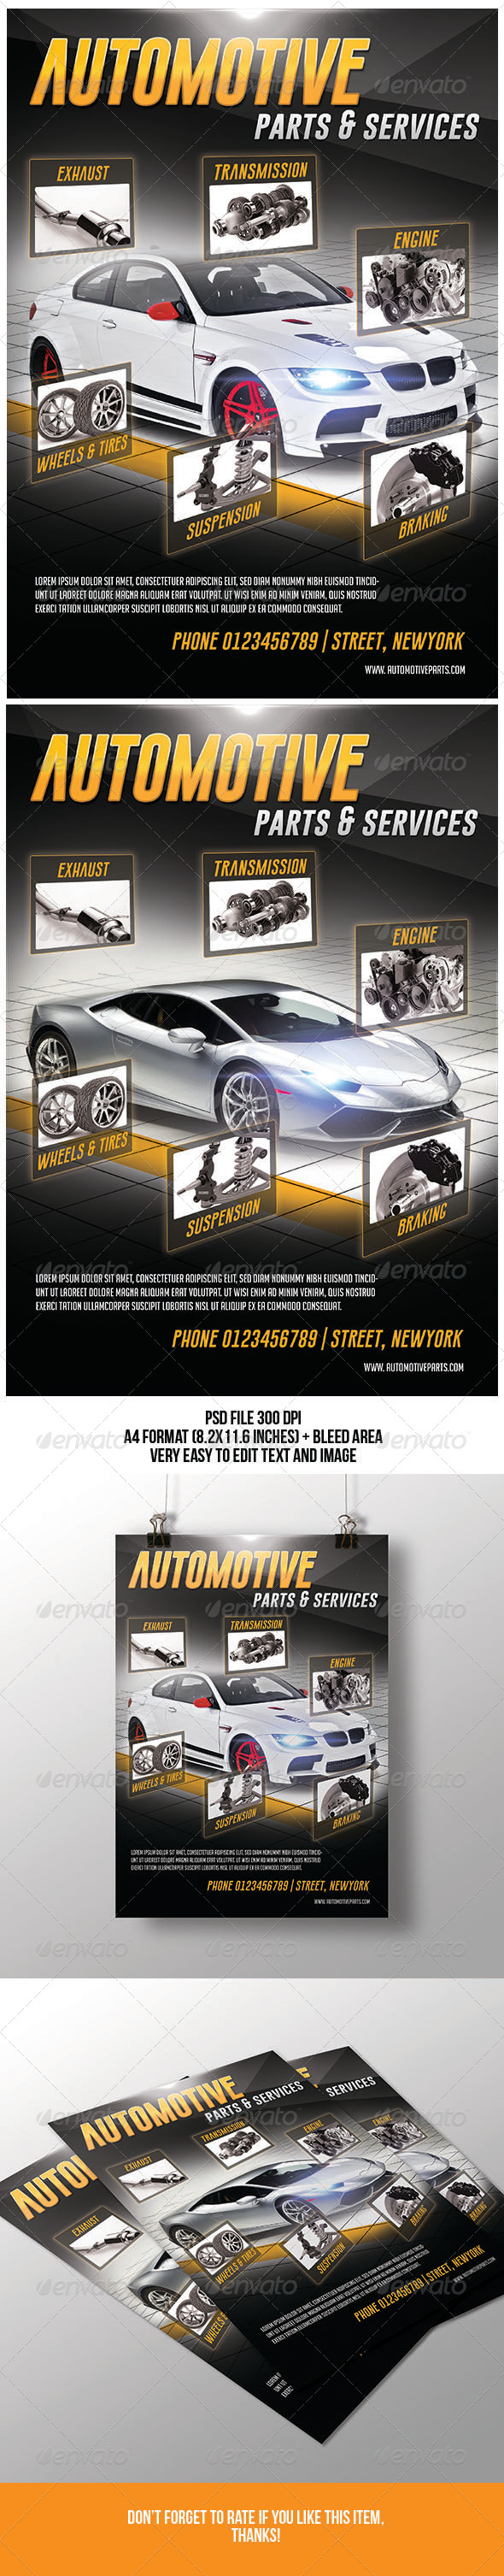 Automotive Parts & Services Flyer - Corporate Flyers